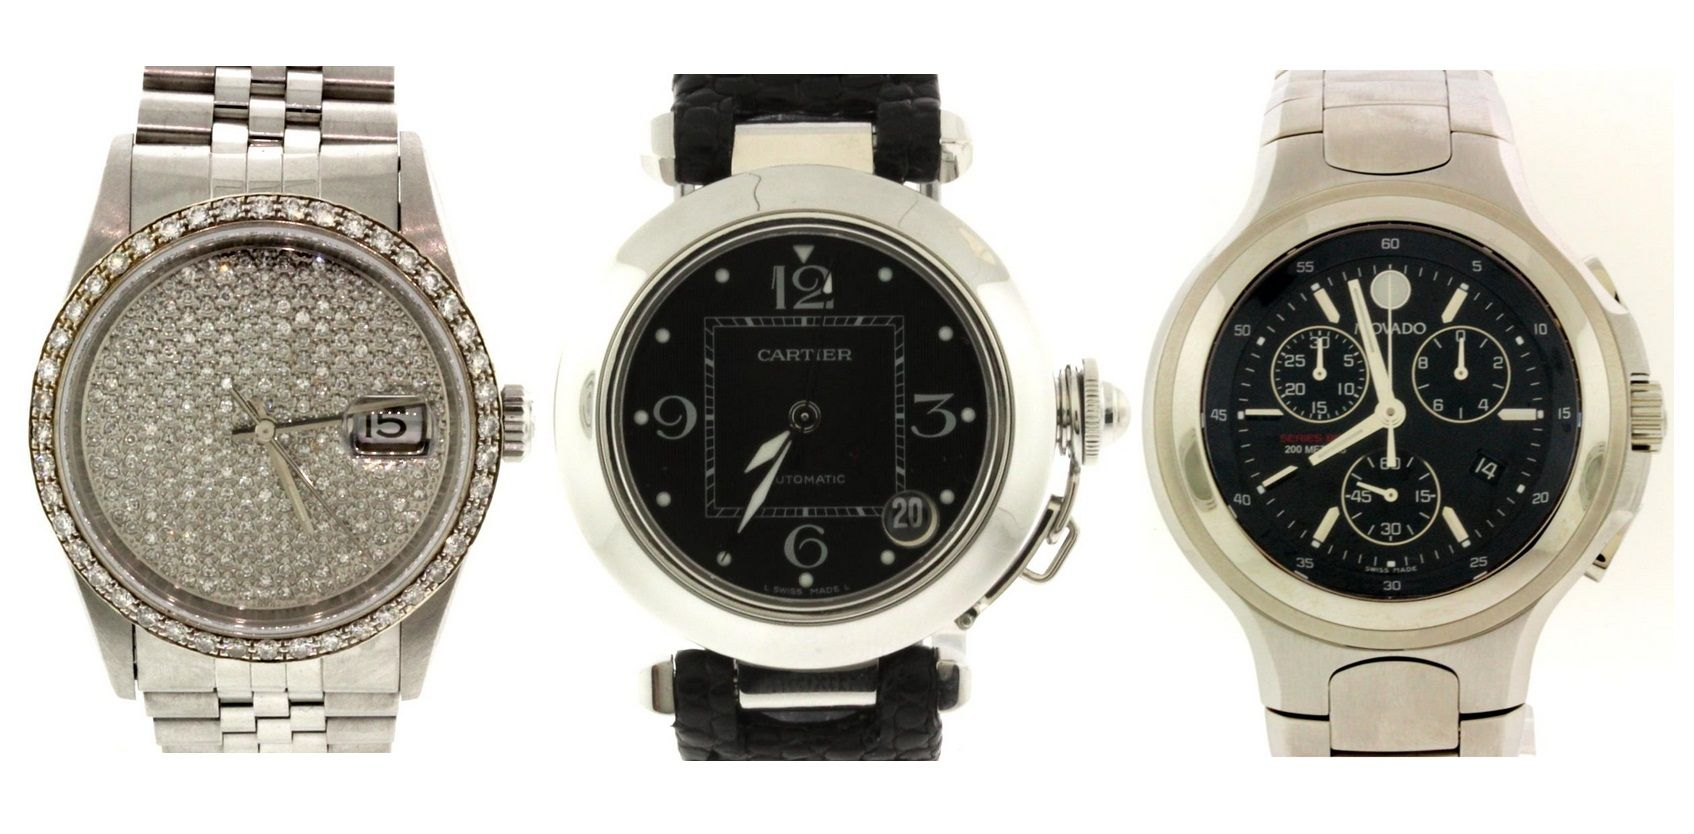 Just in: Rolex, Cartier & MovadoWear luxury for a fraction of the retail price! Bid now: http://prrm.ws/1CBdjq7